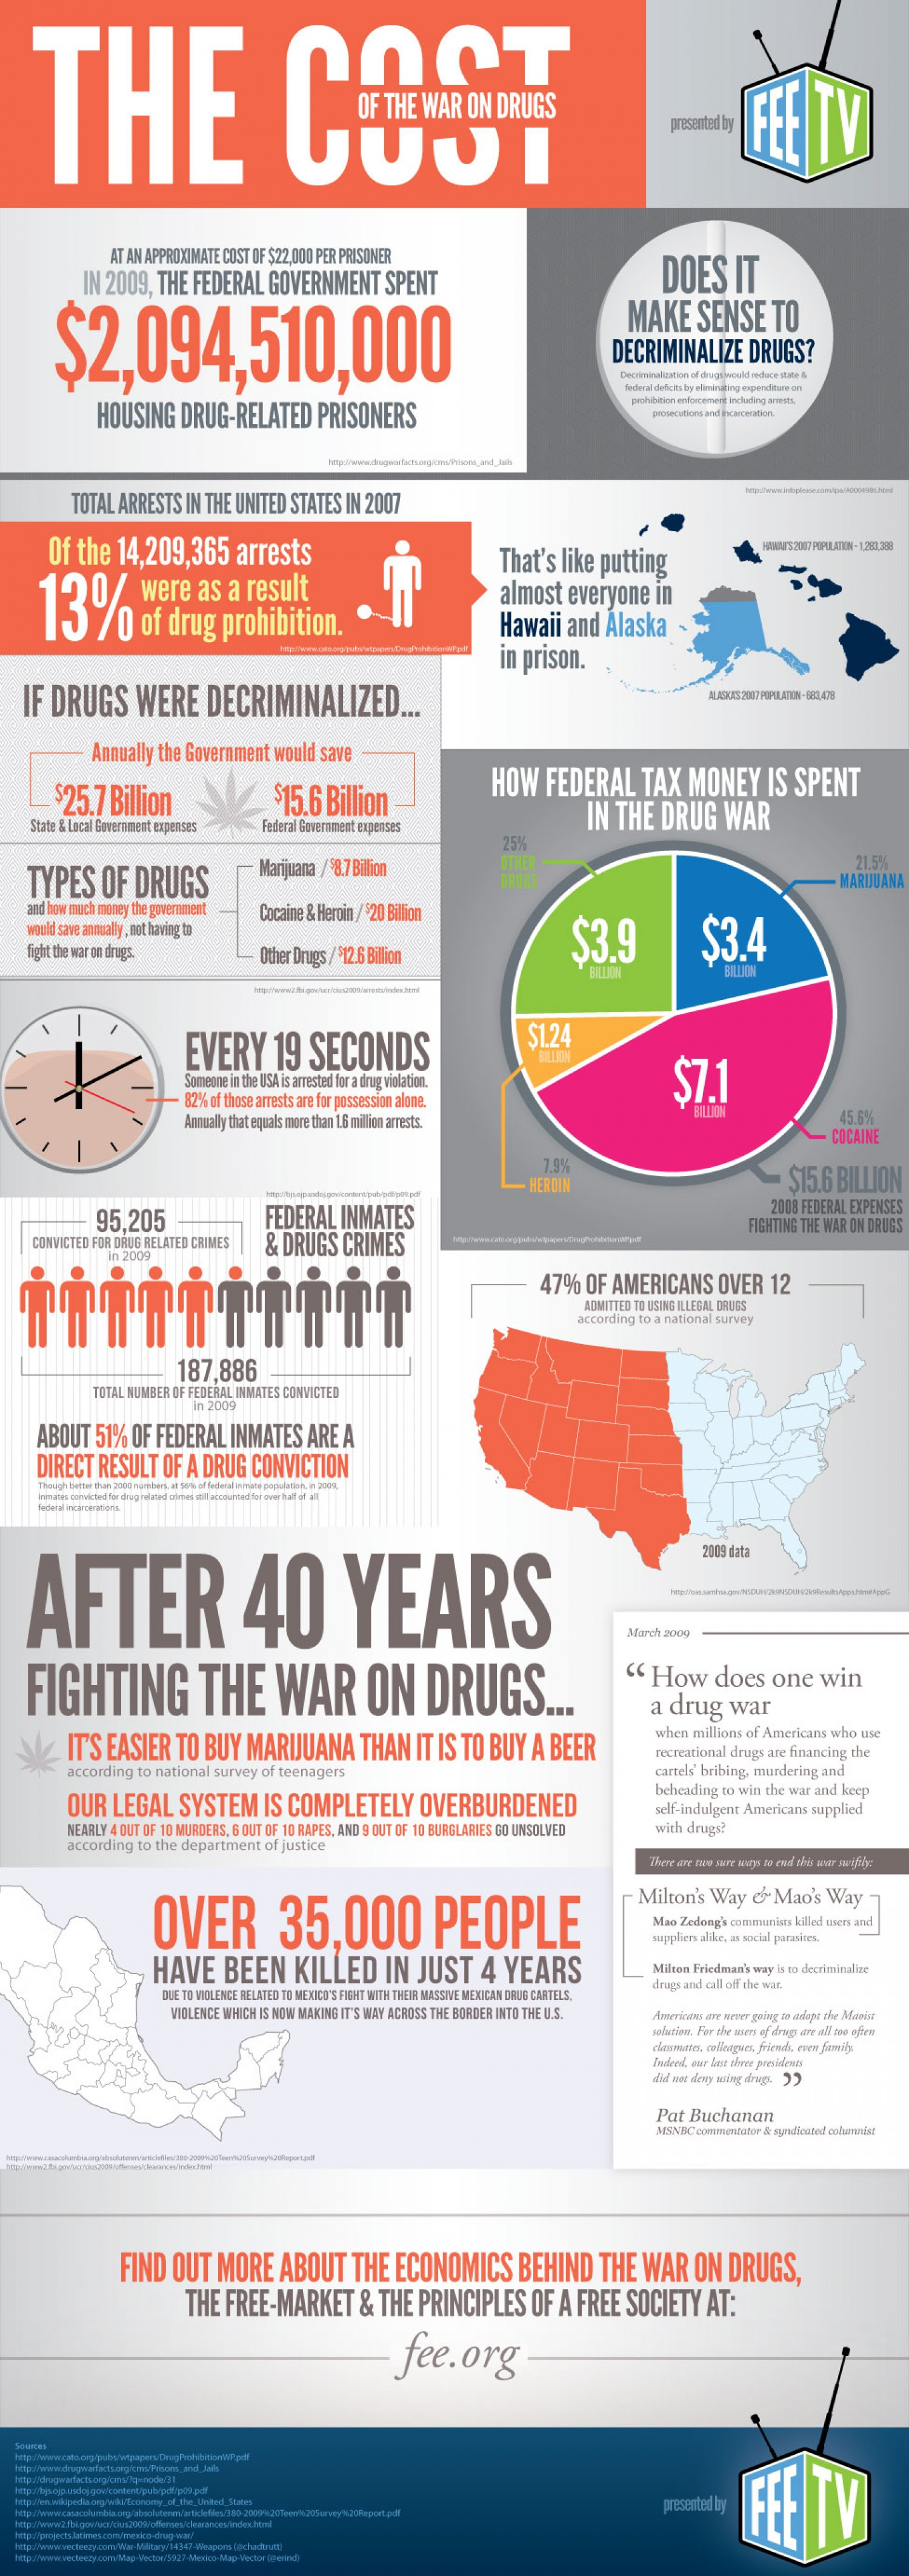 5. The Cost of the War on Drugs